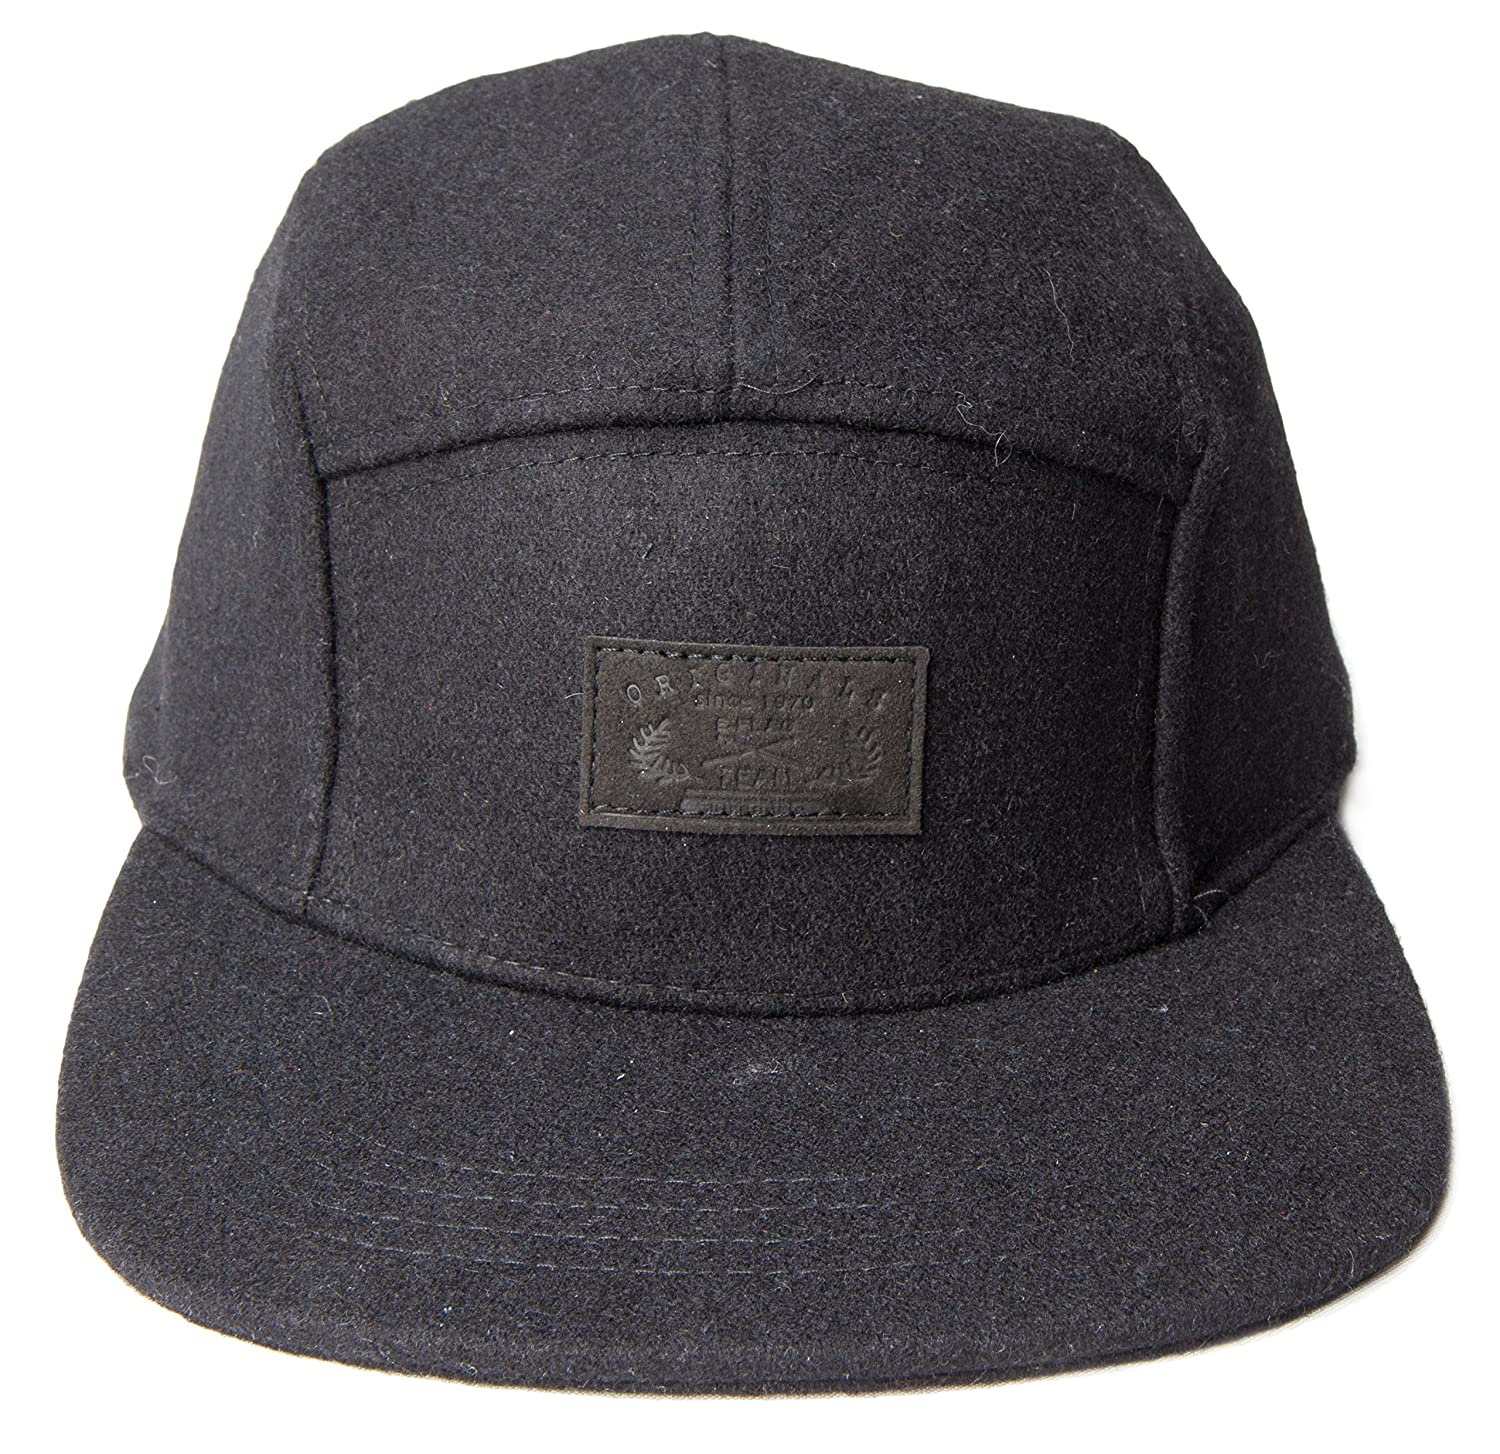 5-Panel Hats (One-Size a06af1dfe7b